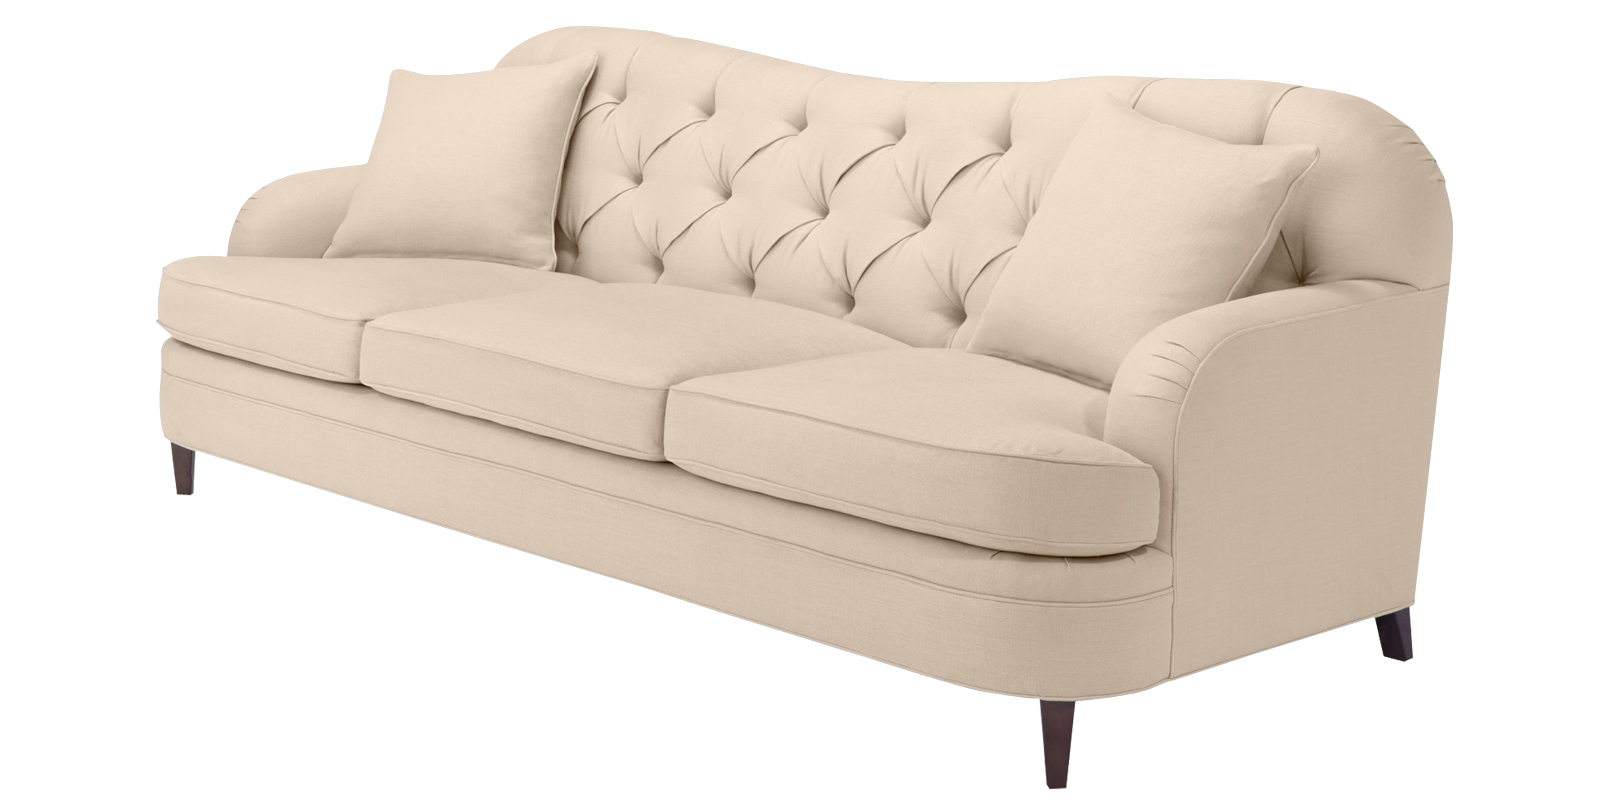 3 Seater Sofa Bed Dreams Cadet Beige Color Tufted Three Seater Sofa Dreamzz